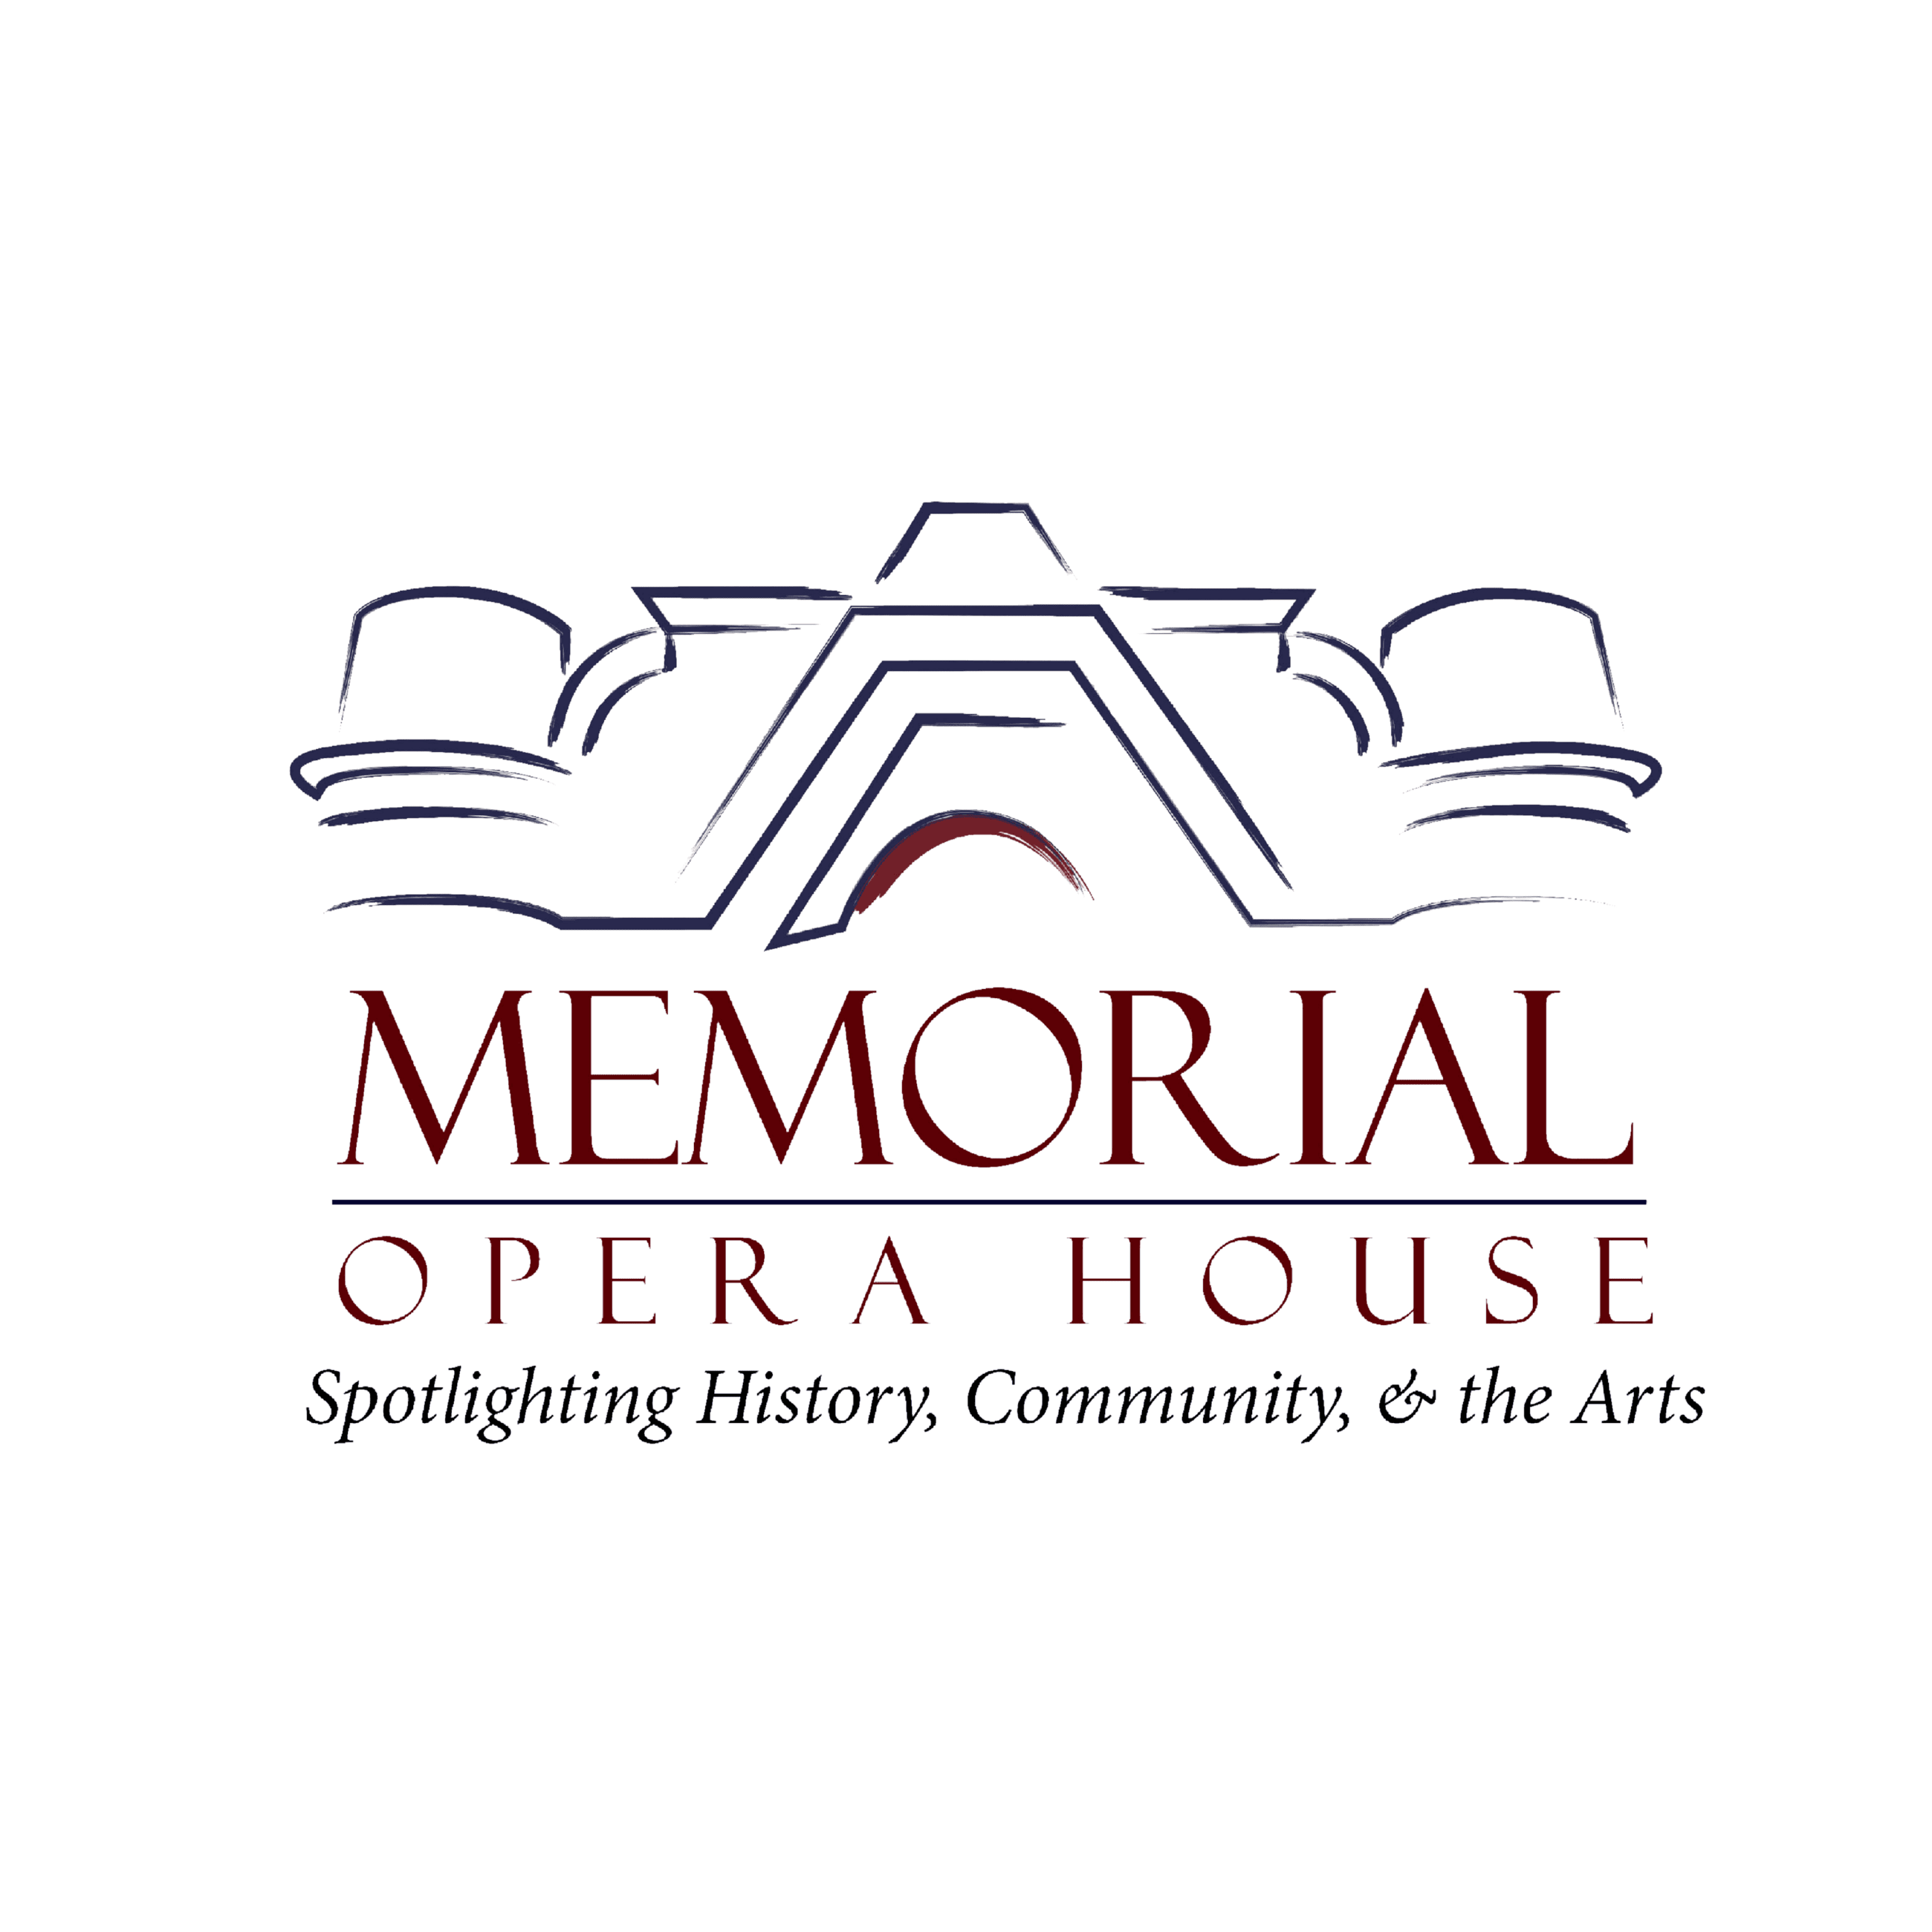 Learn about upcoming theatre productions and music concerts at the historic Memorial Opera House.